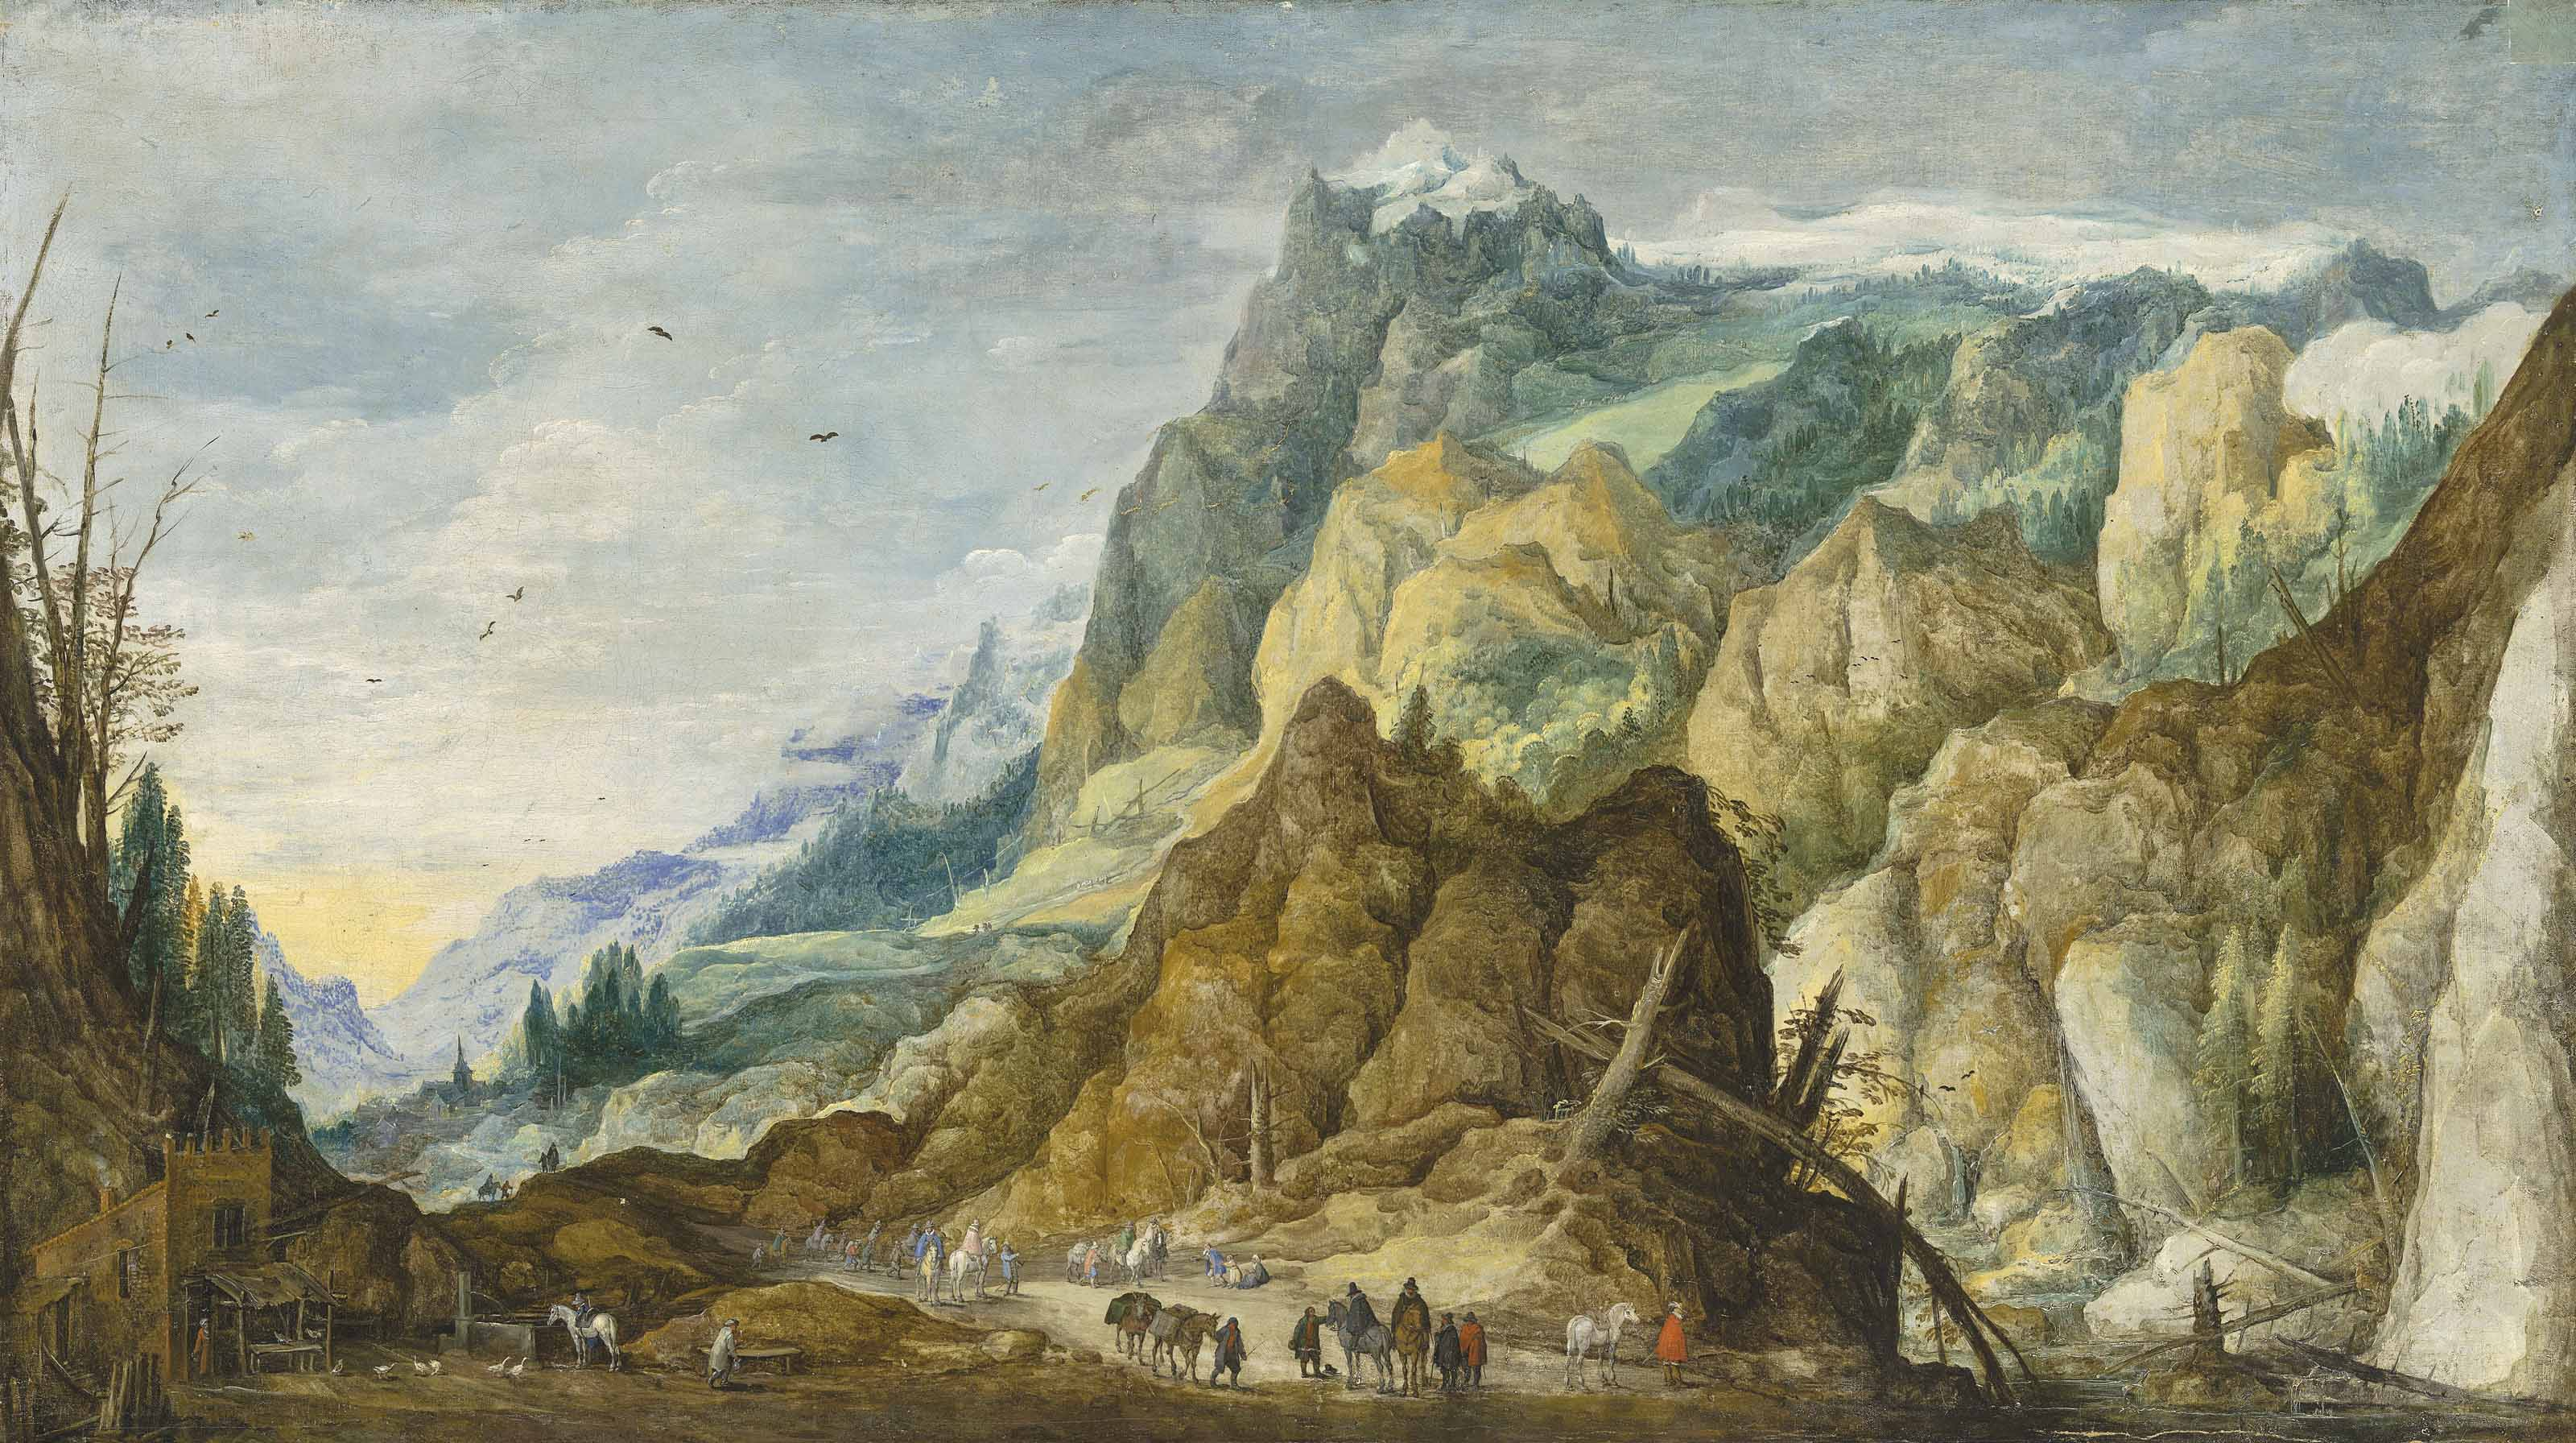 An extensive mountainous landscape with travellers